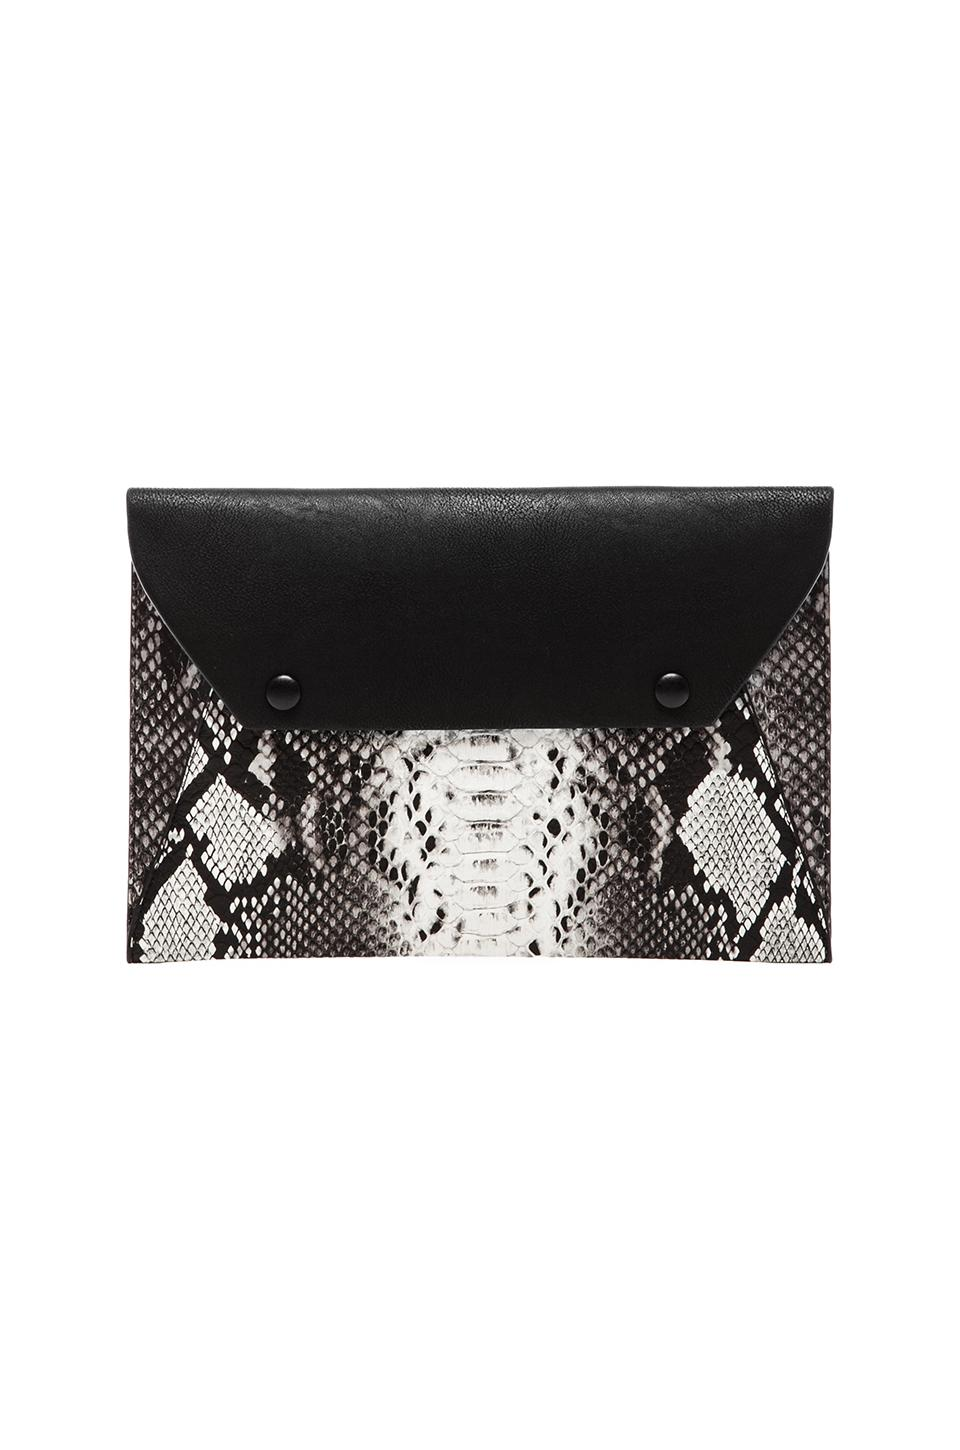 BCBGMAXAZRIA Printed Snake Envelope W/ Covered Snaps in Black & White